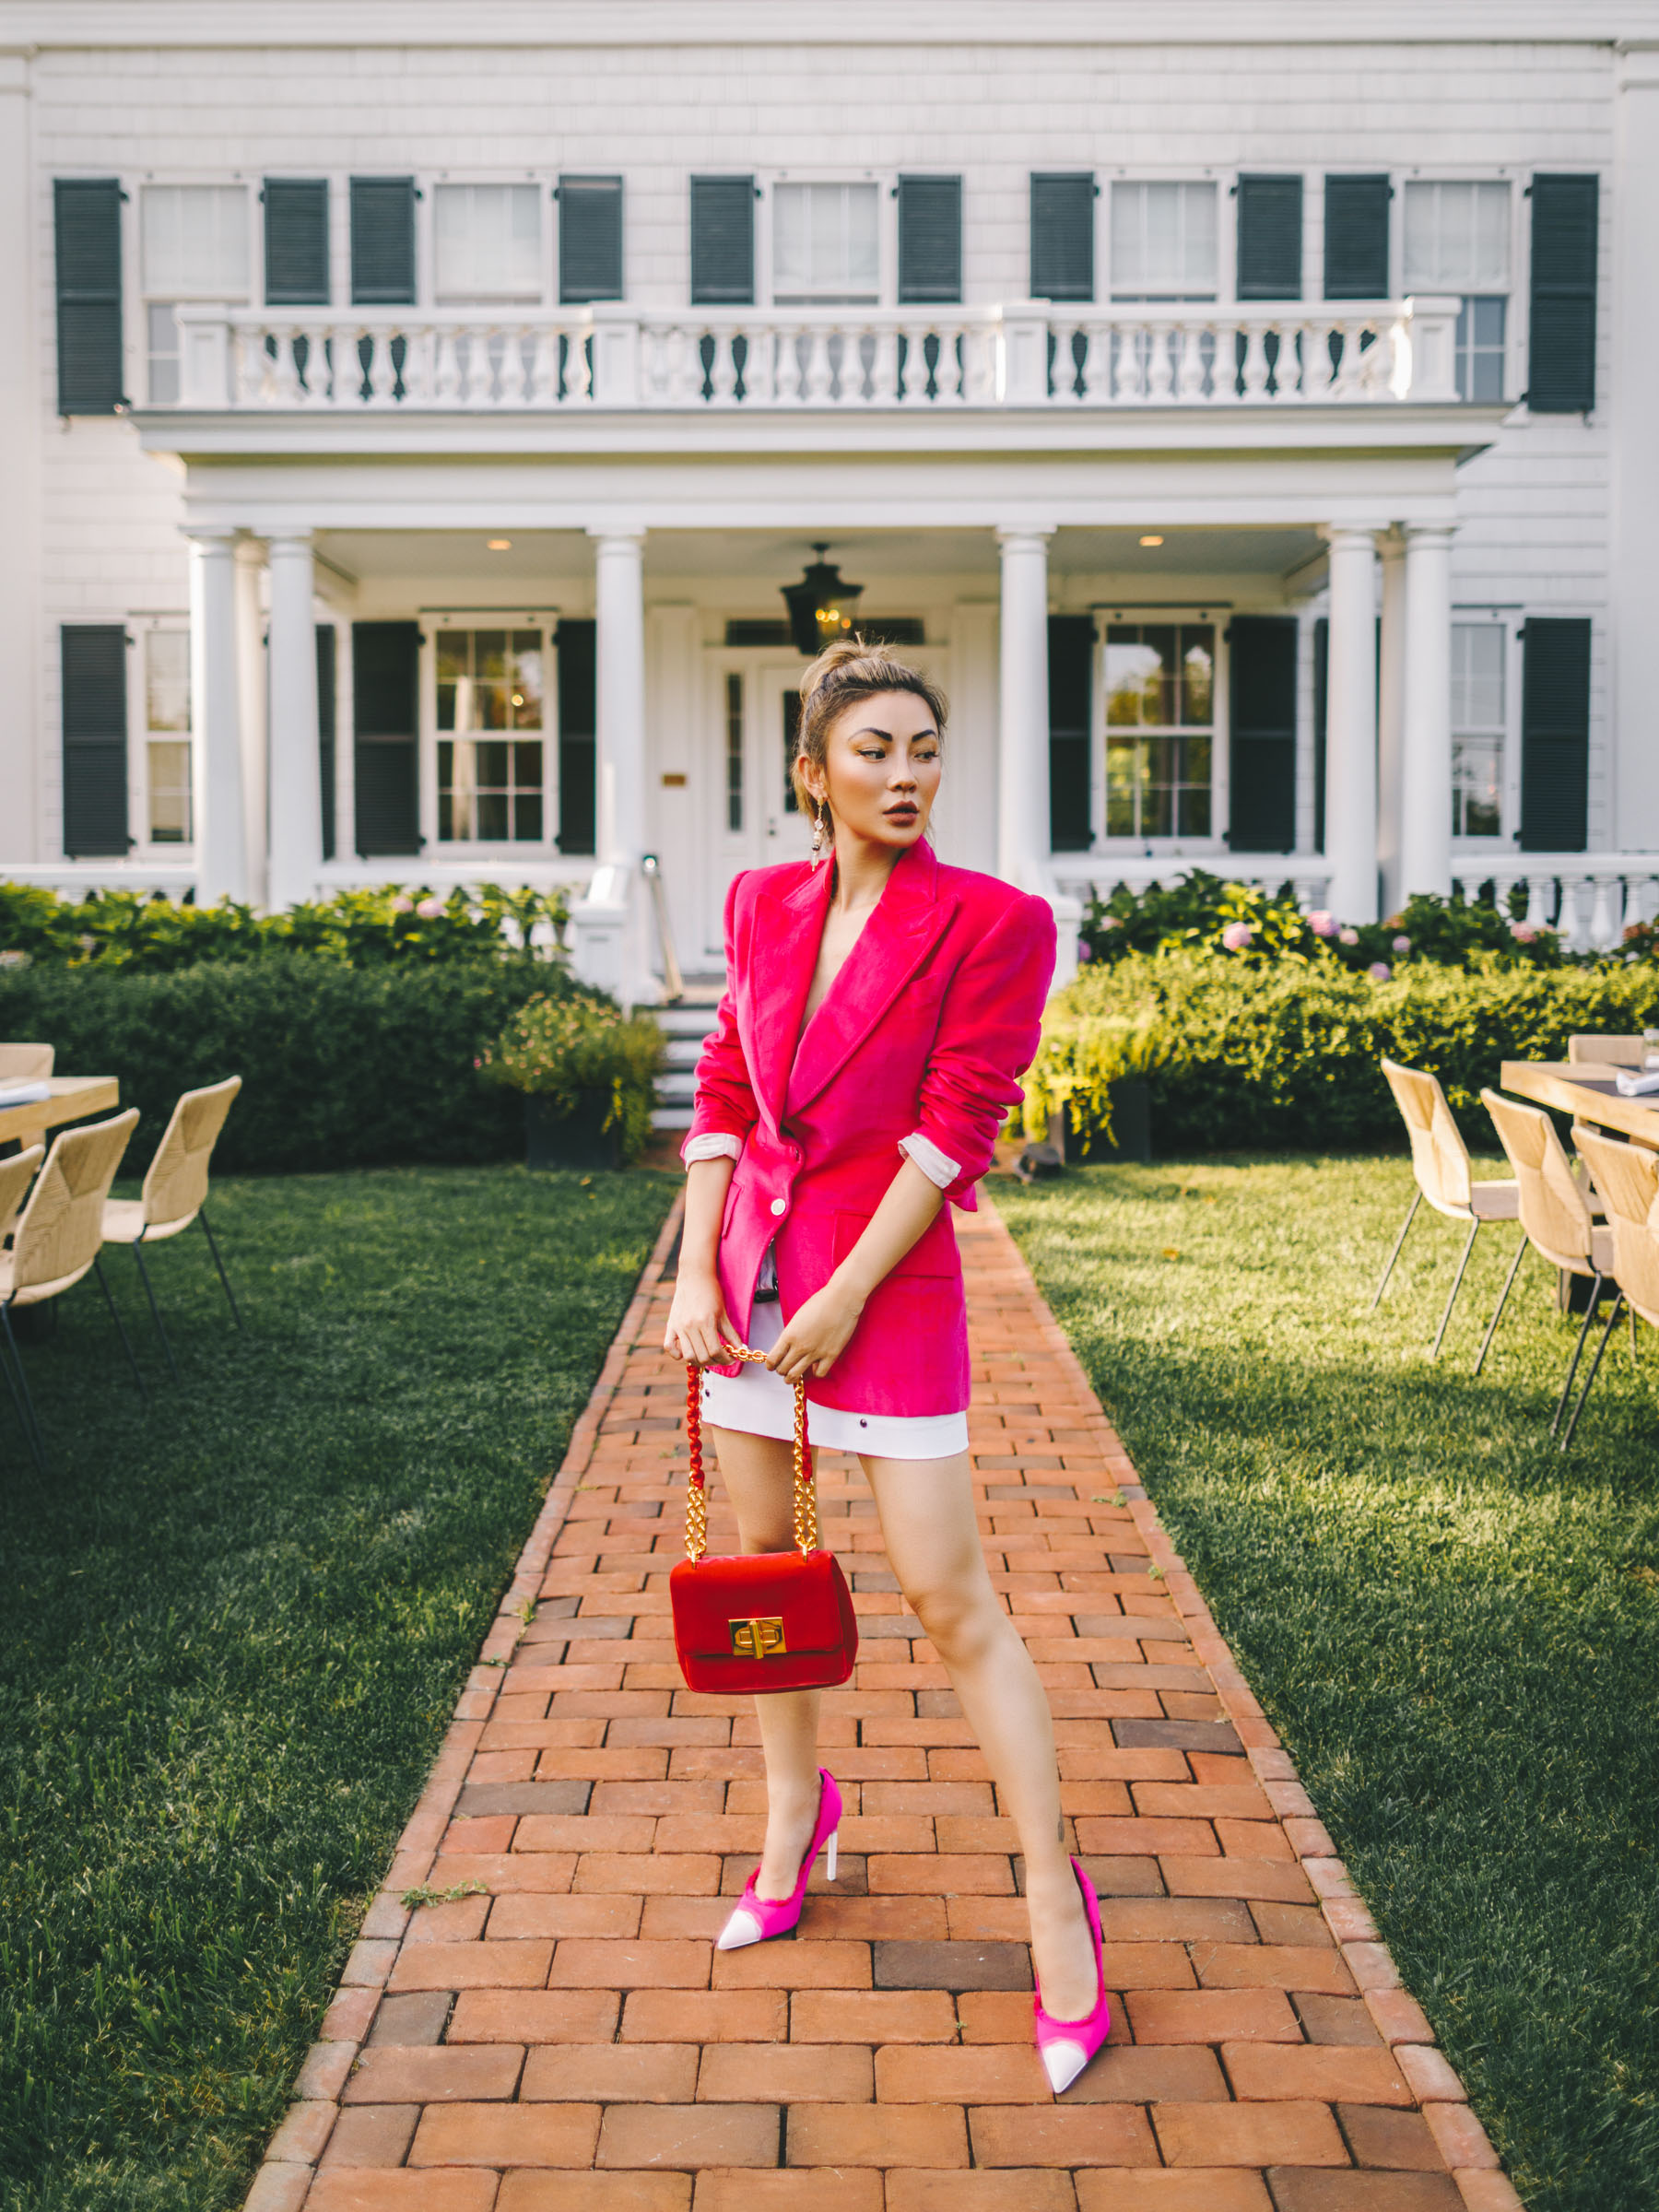 how to style a blazer, pink blazer look, suiting fashion trend, tom ford in the hamptons // Notjessfashion.com